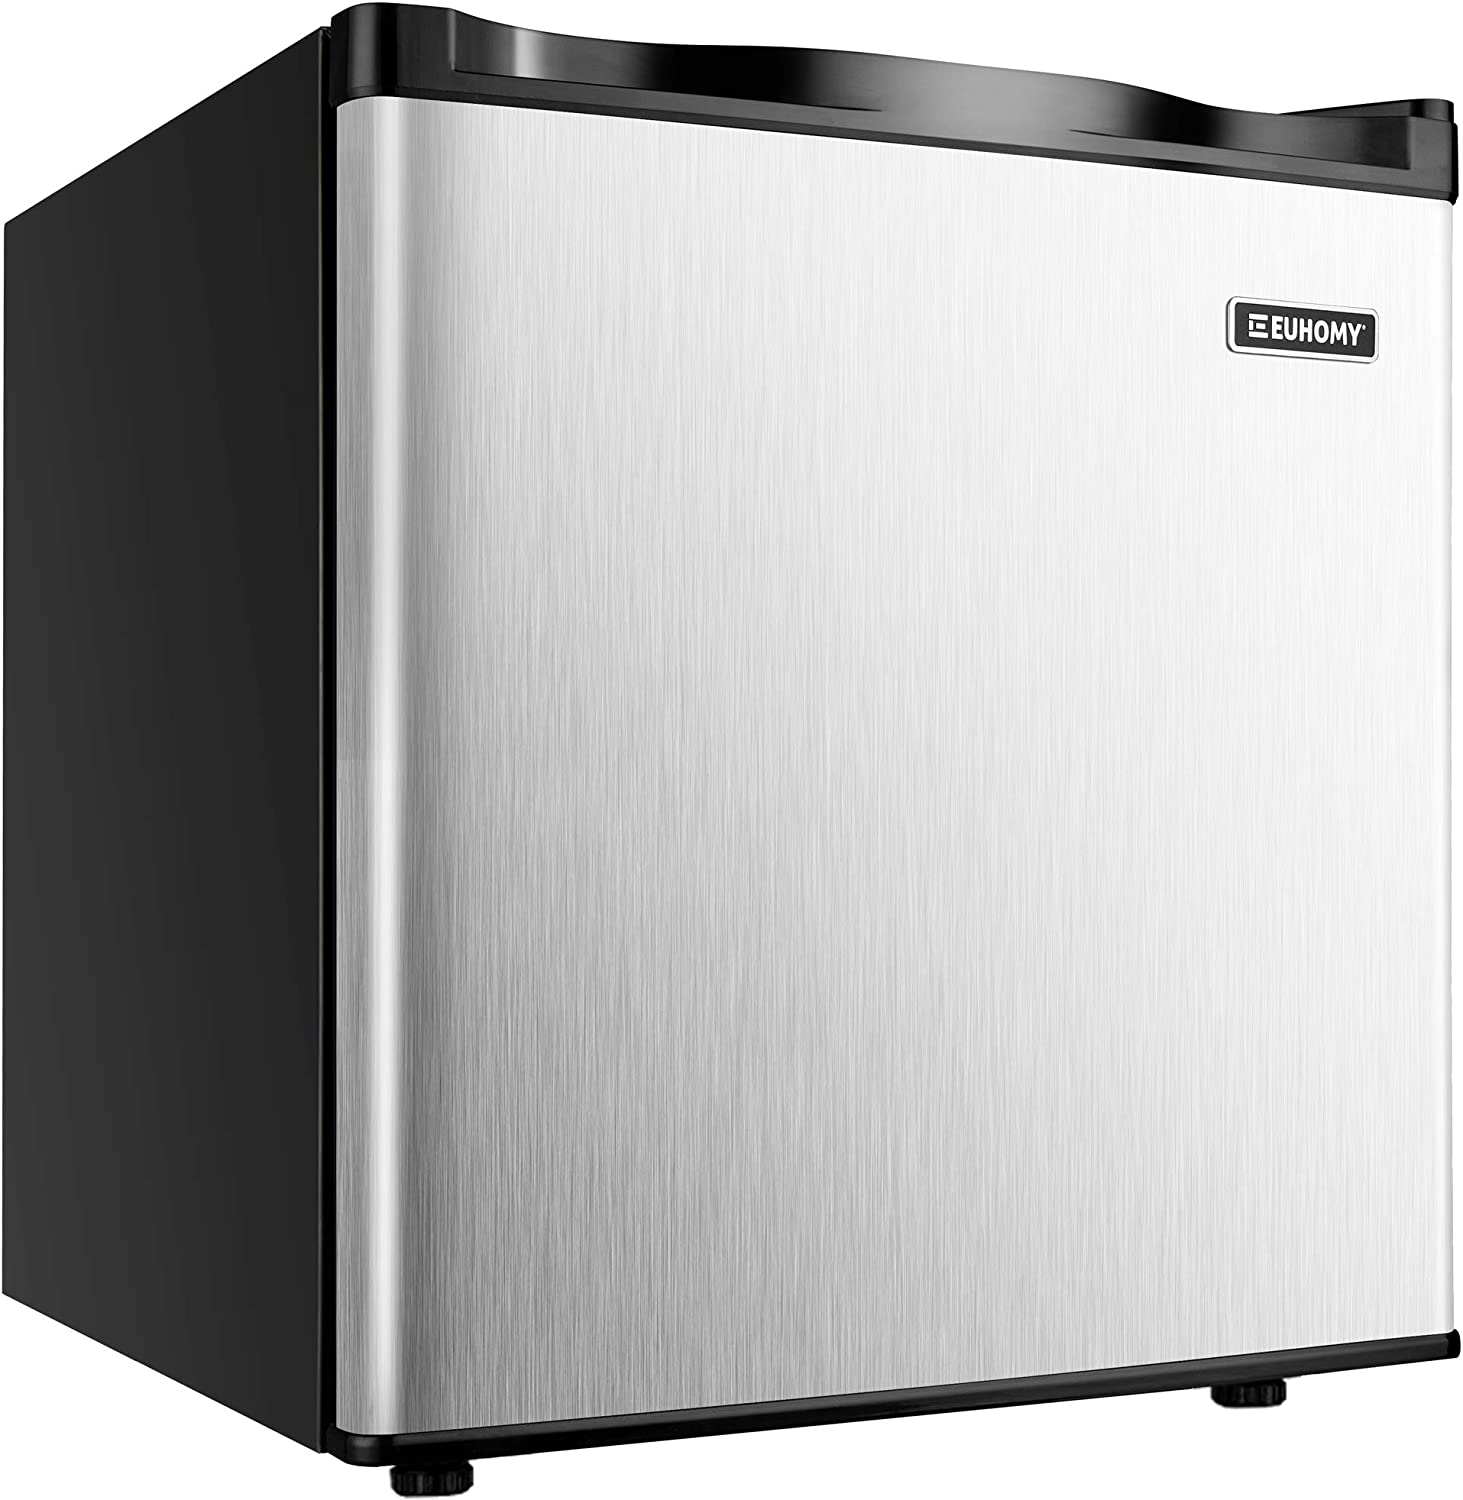 Upright Freezer ft Two Removable Shelves and Three-layers Glass Door Coollife 1.1 cu Compact Fridge Freezer with Adjustable Thermostat for Ice Cream//Breast Milk//Sea Food//High-alcohol Liquor